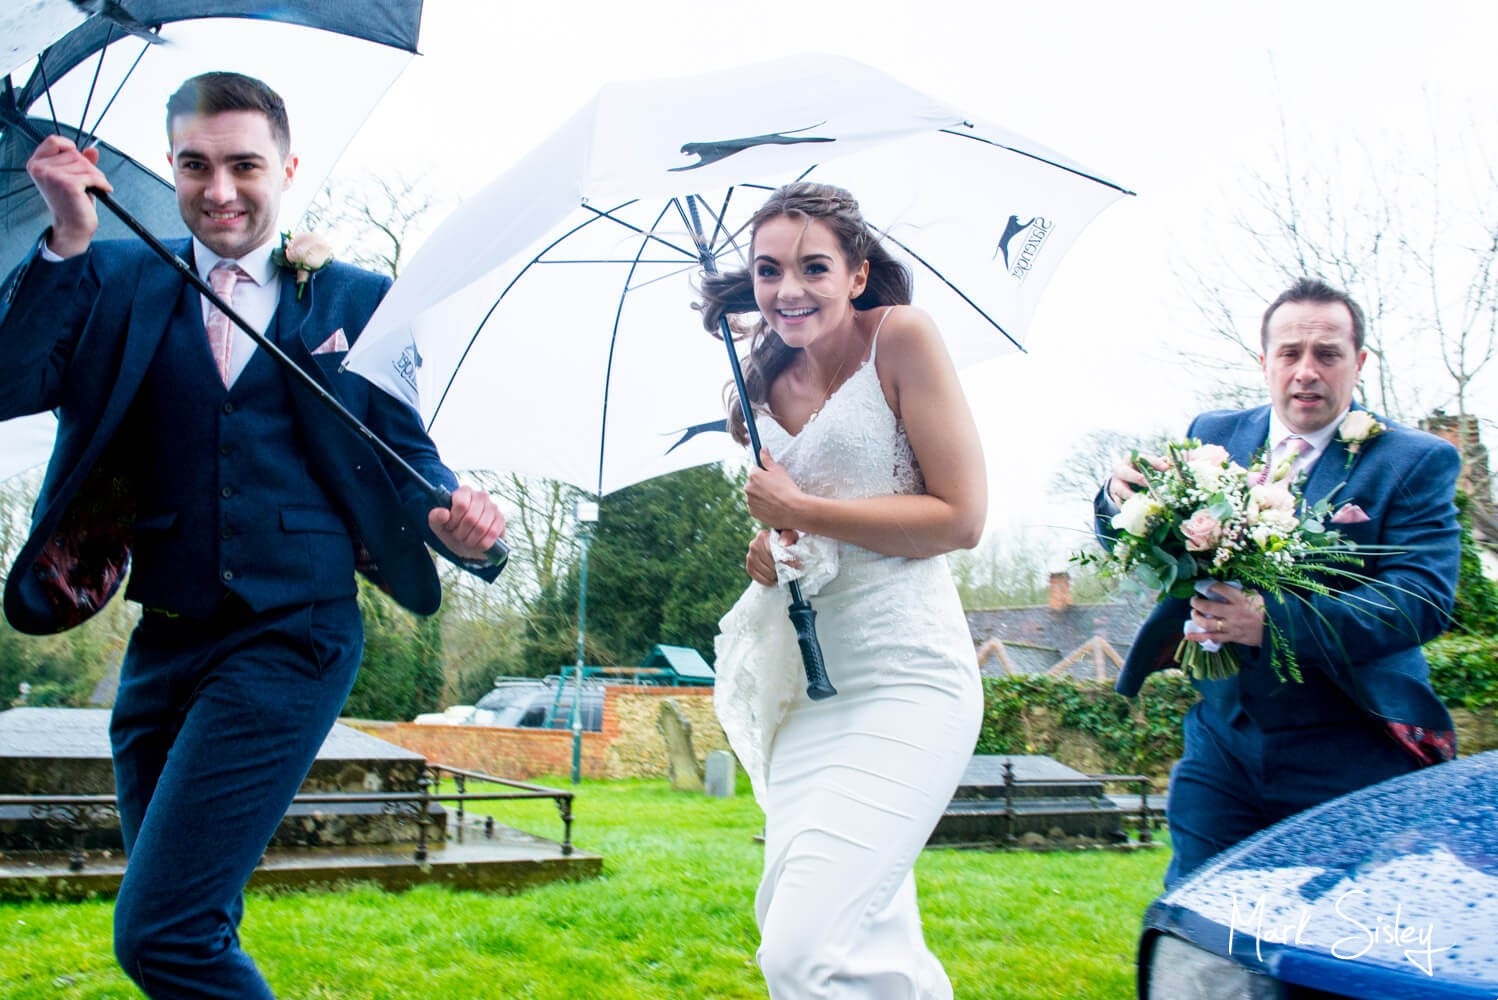 The bride arrives at the church for her Waddesdon Manor wedding during Storm Dennis